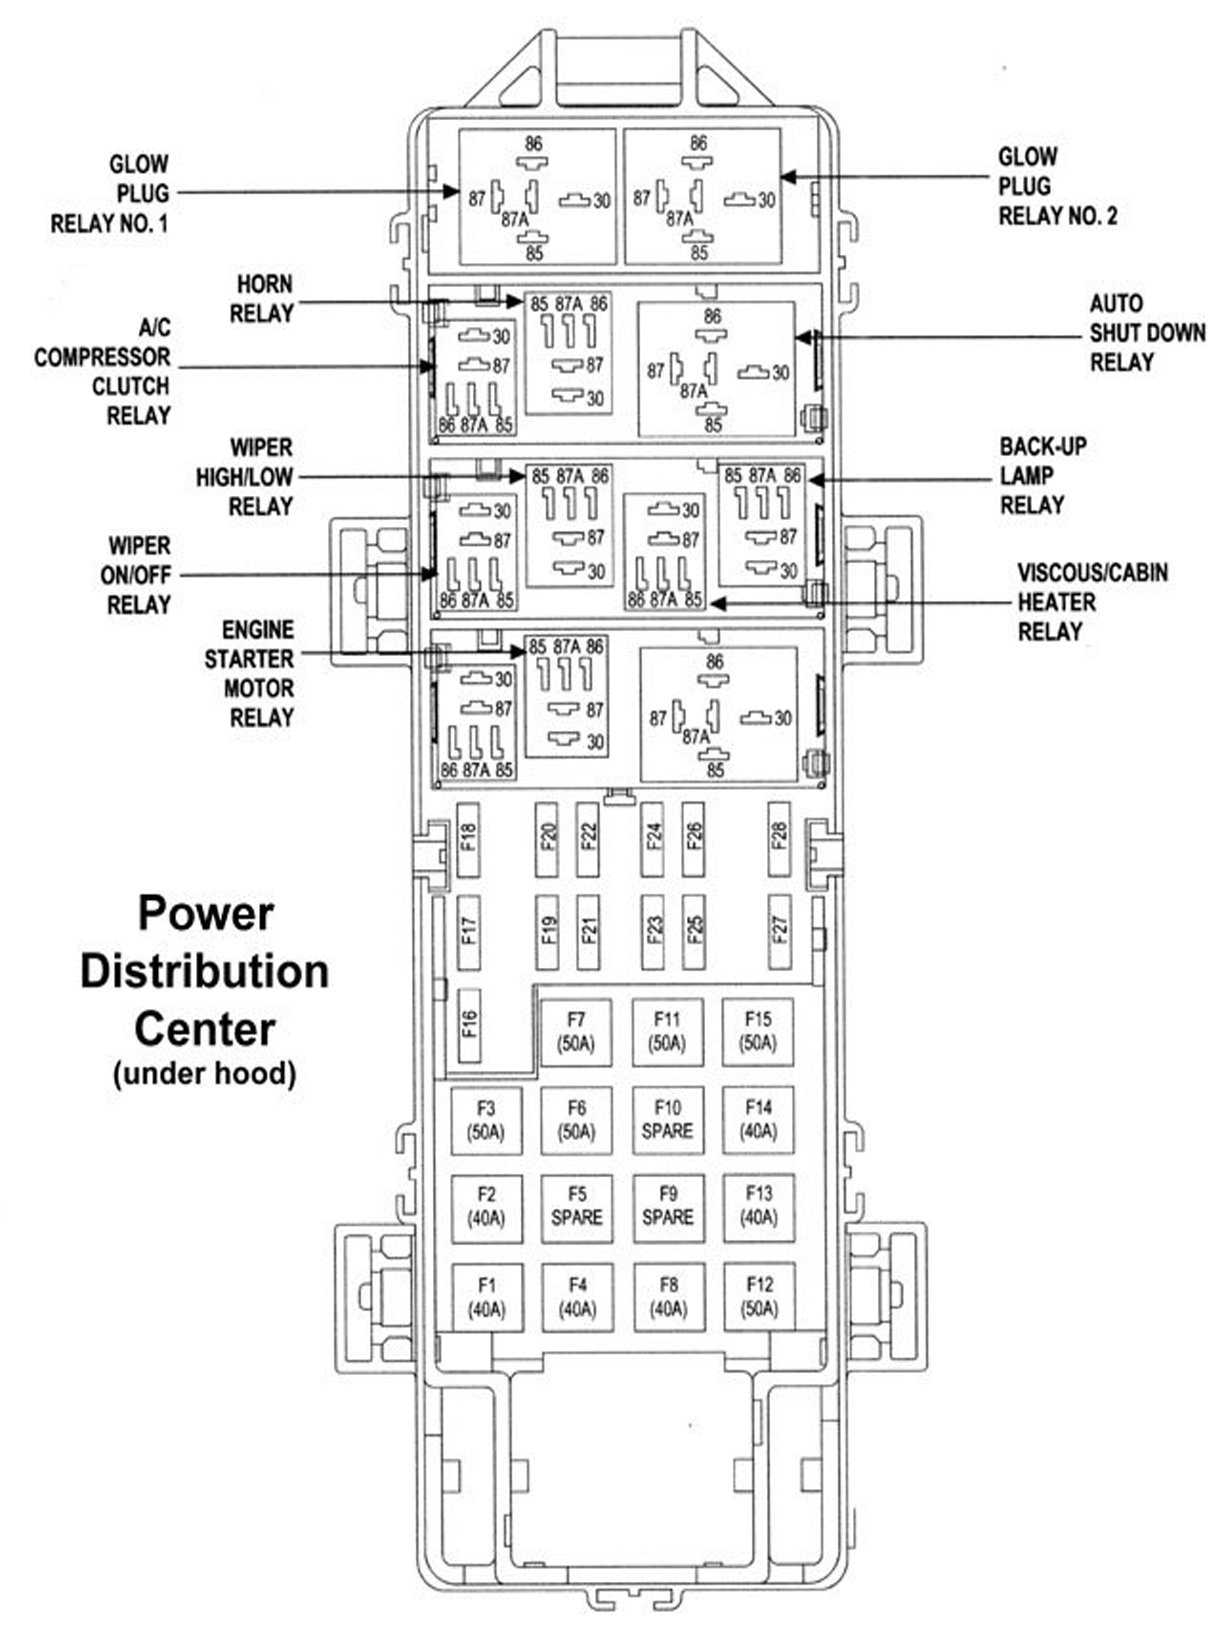 Jeep Xj Fuse Box Location Wiring Diagram Schematics 1997 Jeep Grand Cherokee  Fuse Box Diagram 2002 Jeep Grand Cherokee Fuse Box Location